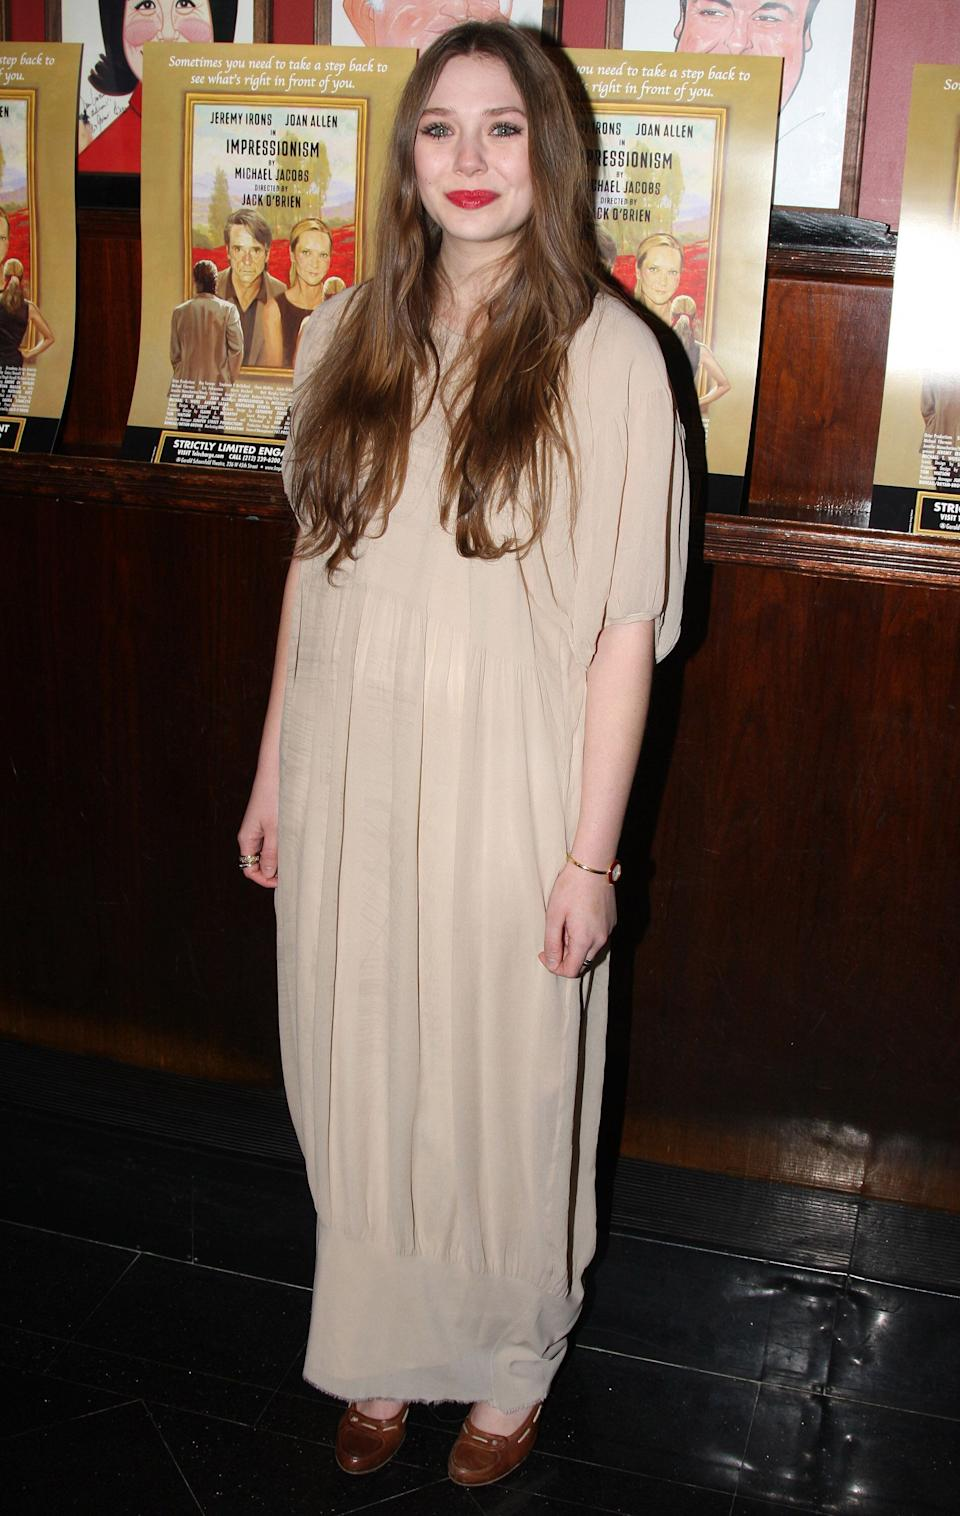 """Elizabeth Olsen at the after-party for the opening night of """"Impressionism"""" in New York City on March 24, 2009."""